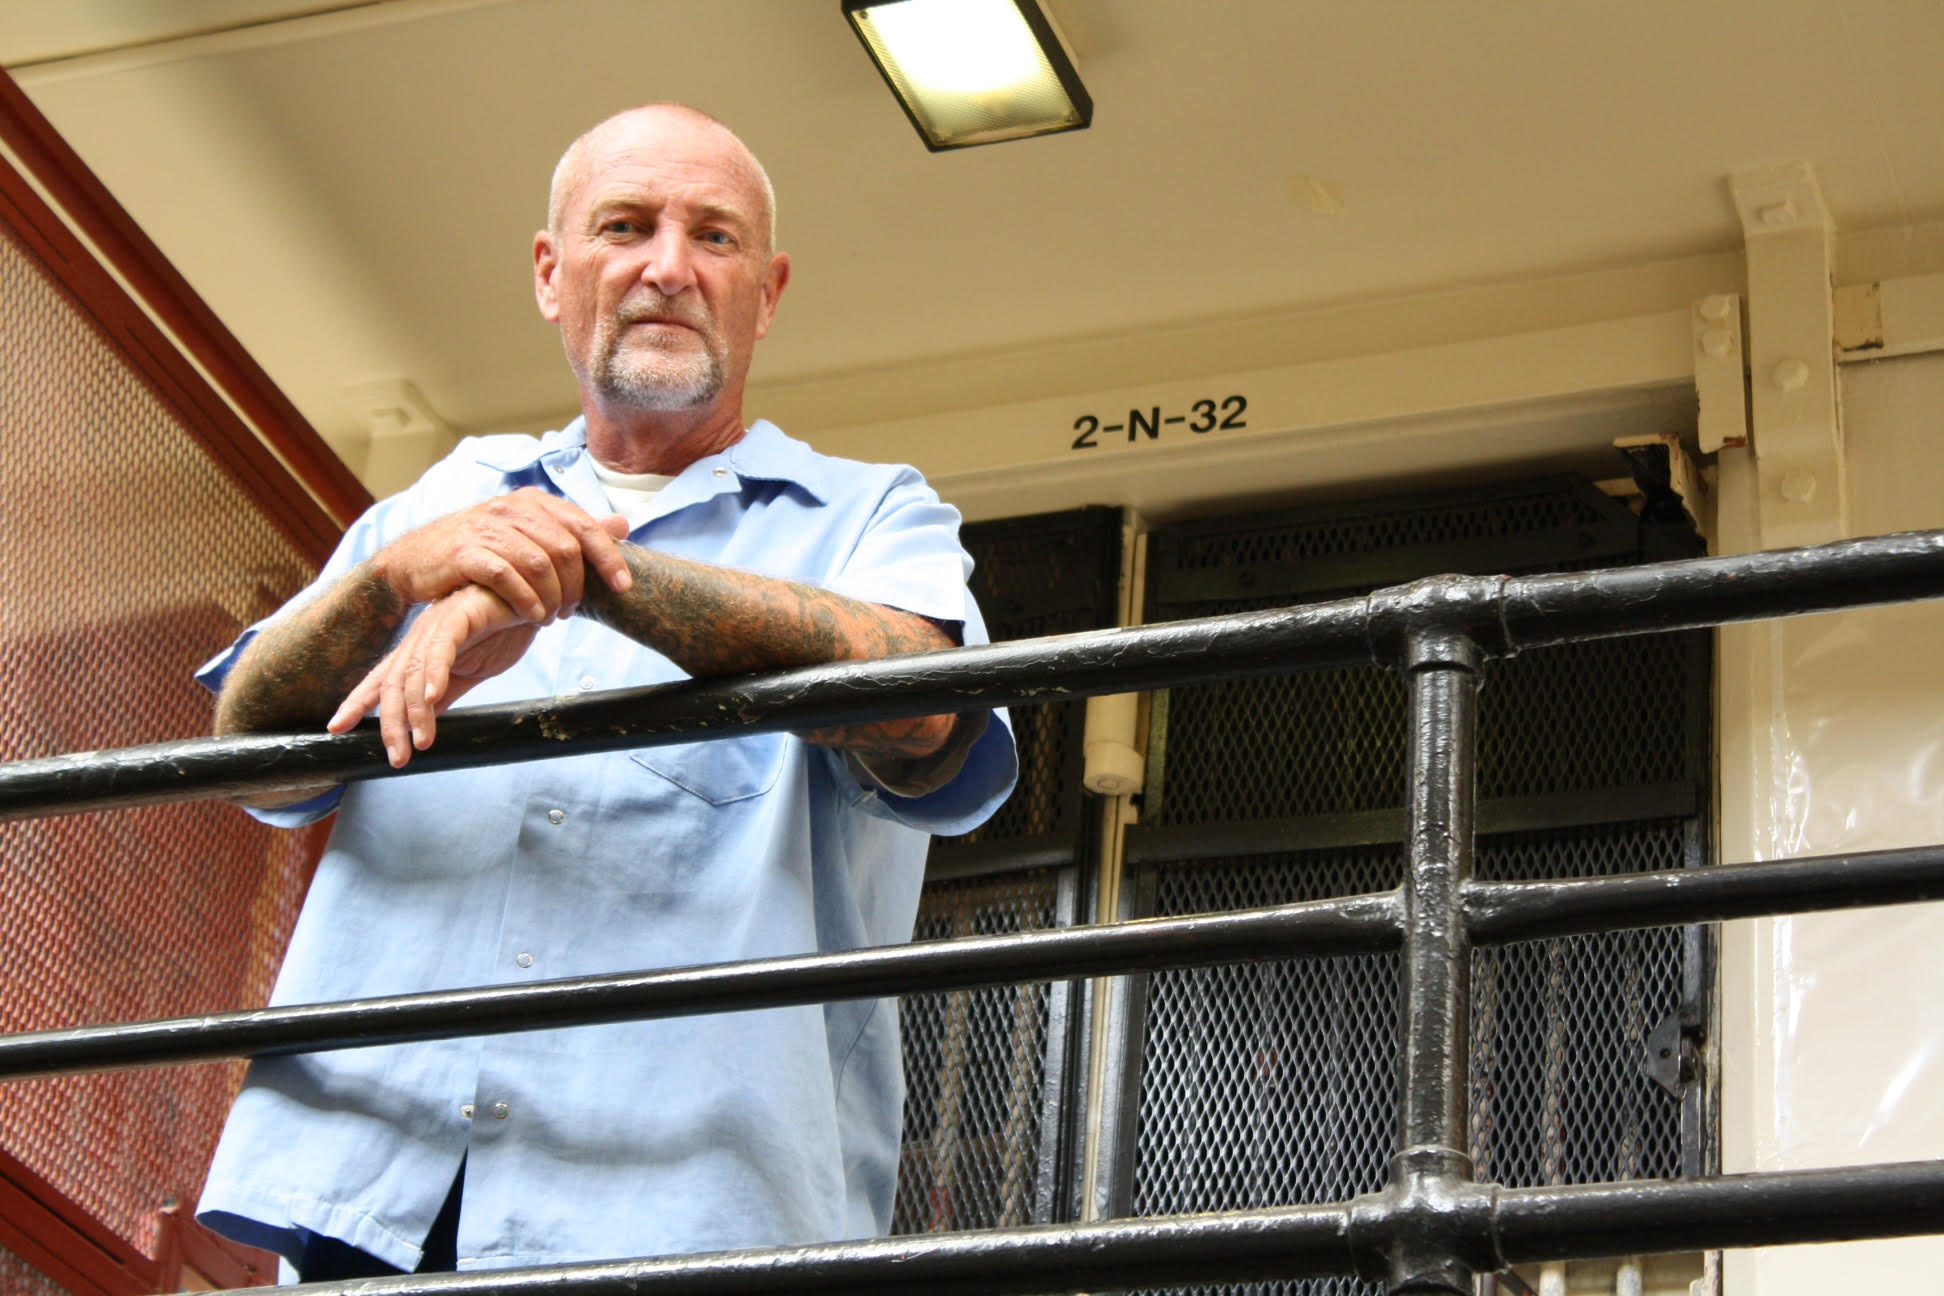 Caption: Douglas Collier outside his cell, Credit: Greg Eskridge and Elisabeth Fall